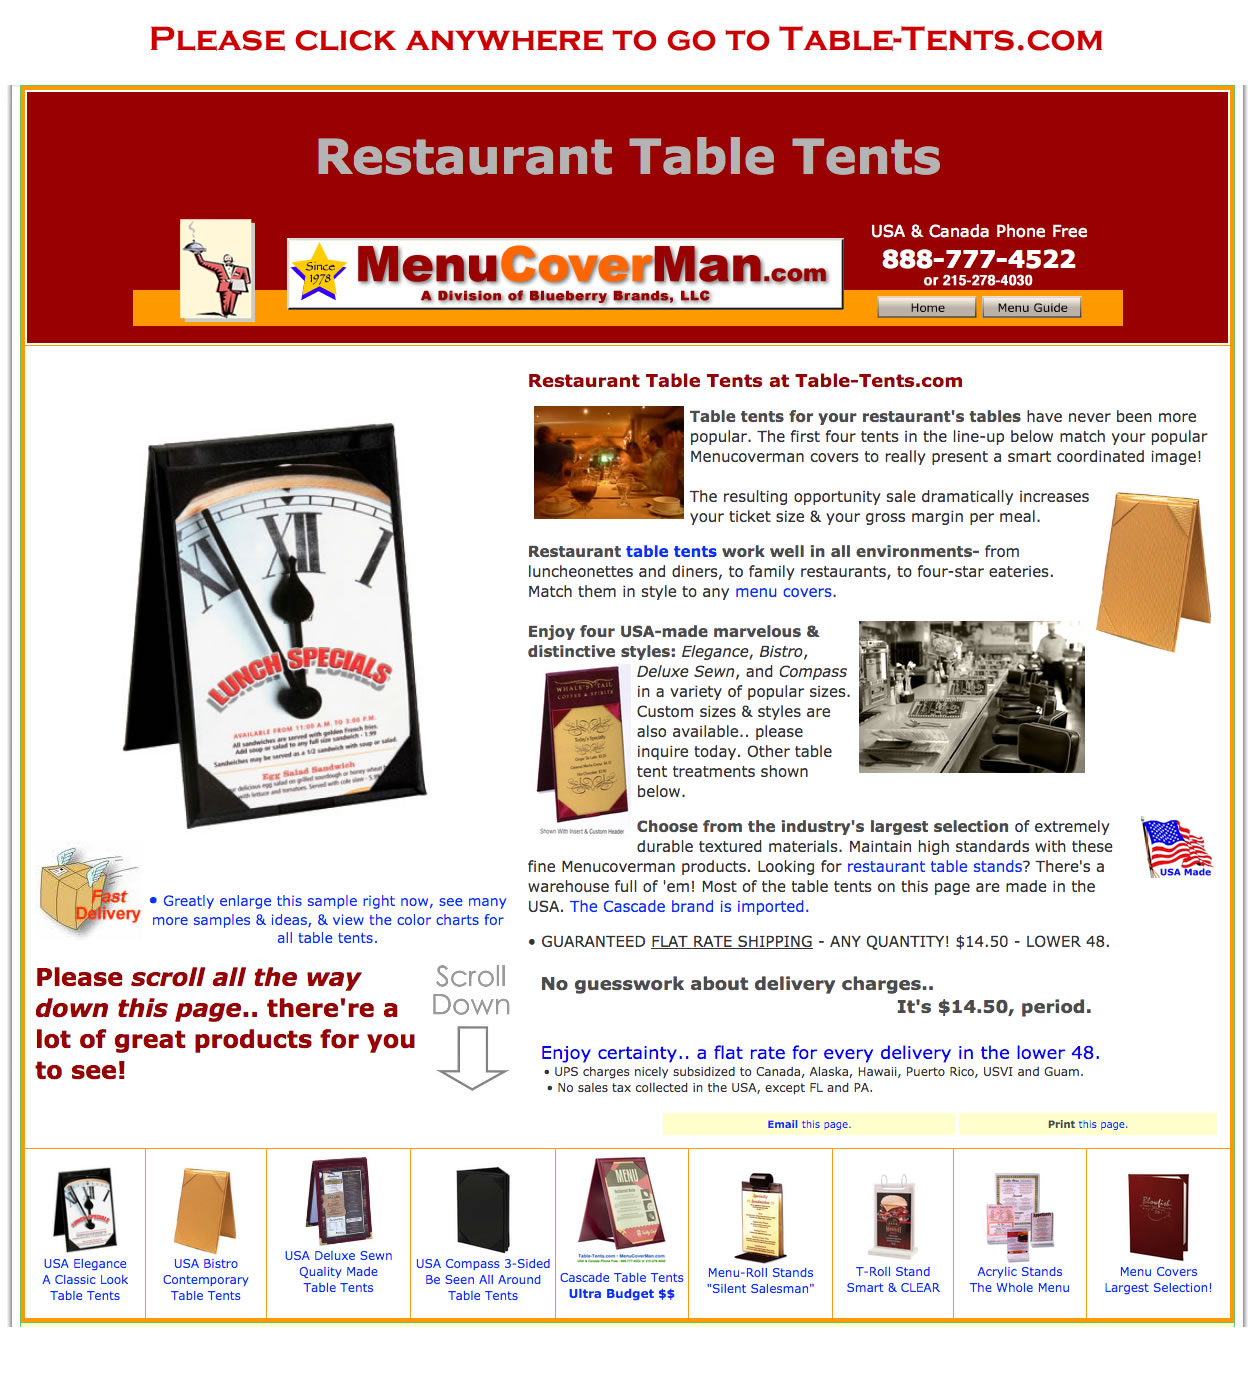 Table Tents For Restaurants - Table tent stands